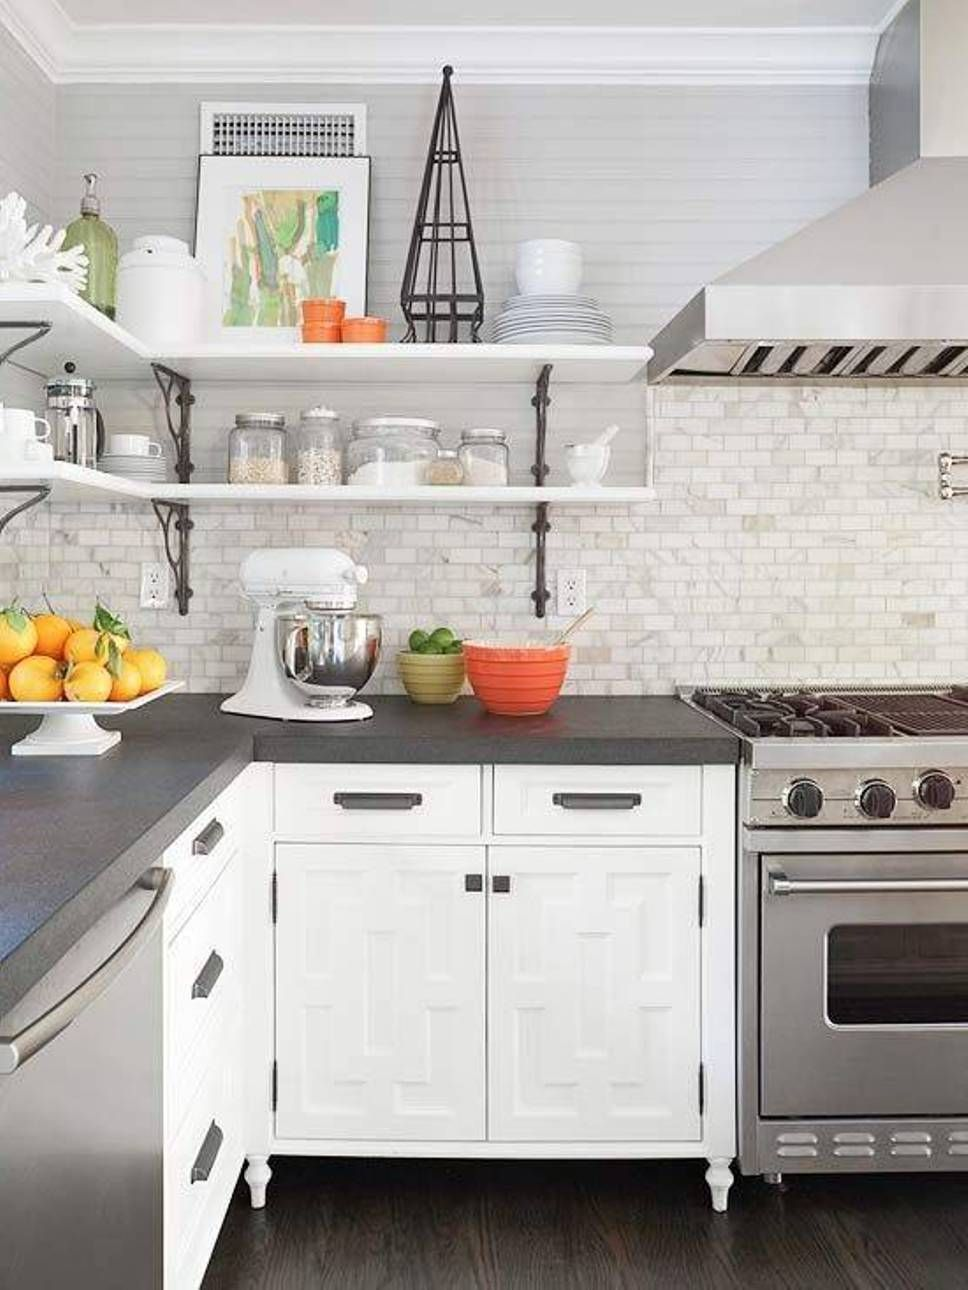 Best Countertop Color In Grey And White Kitchen Cabinets For 640 x 480